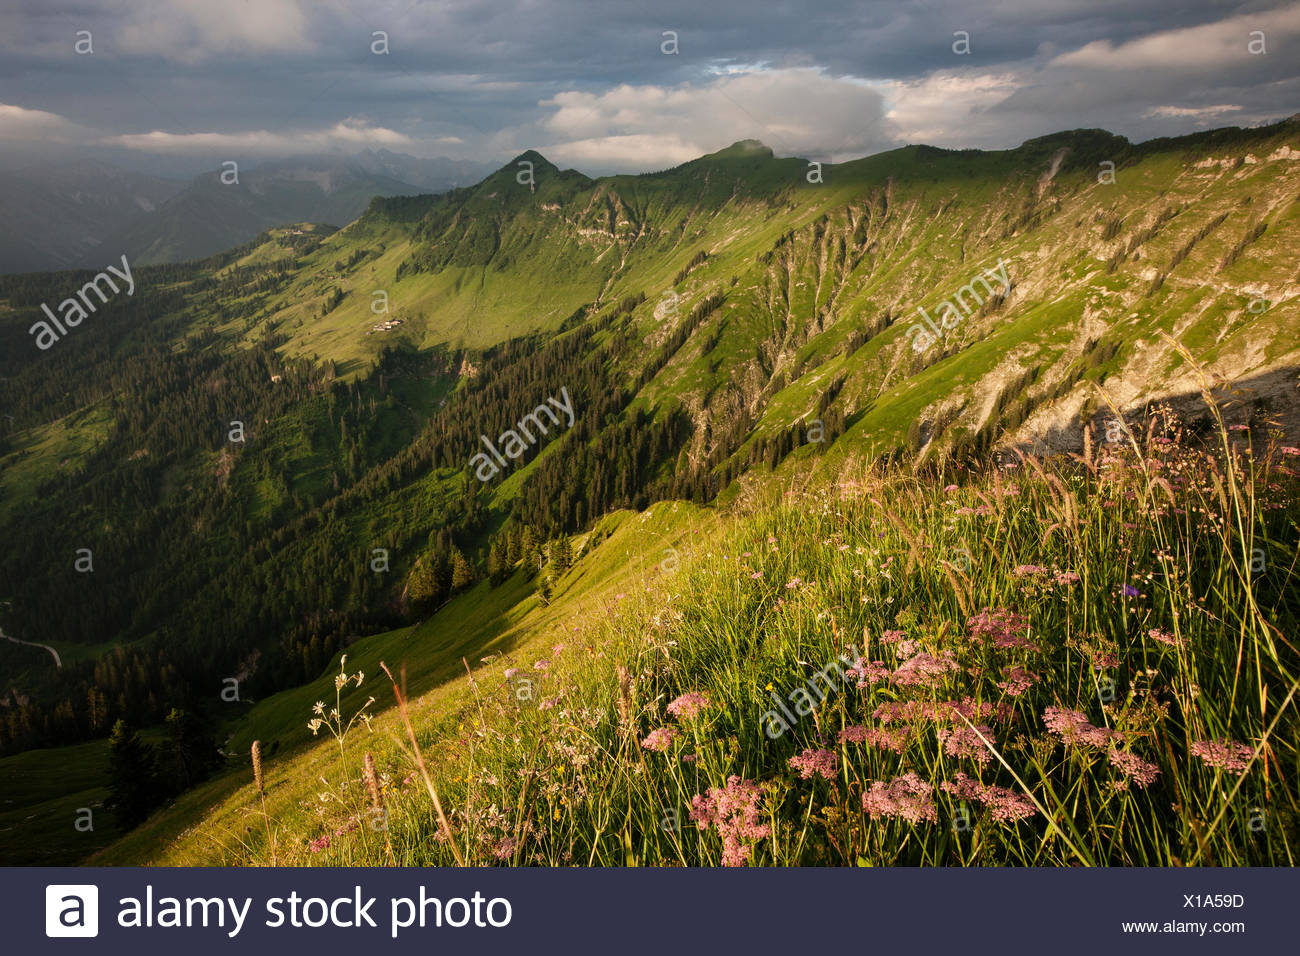 Alpine meadows in summer, Karwendel, stormy atmosphere, Tyrol, Austria - Stock Image